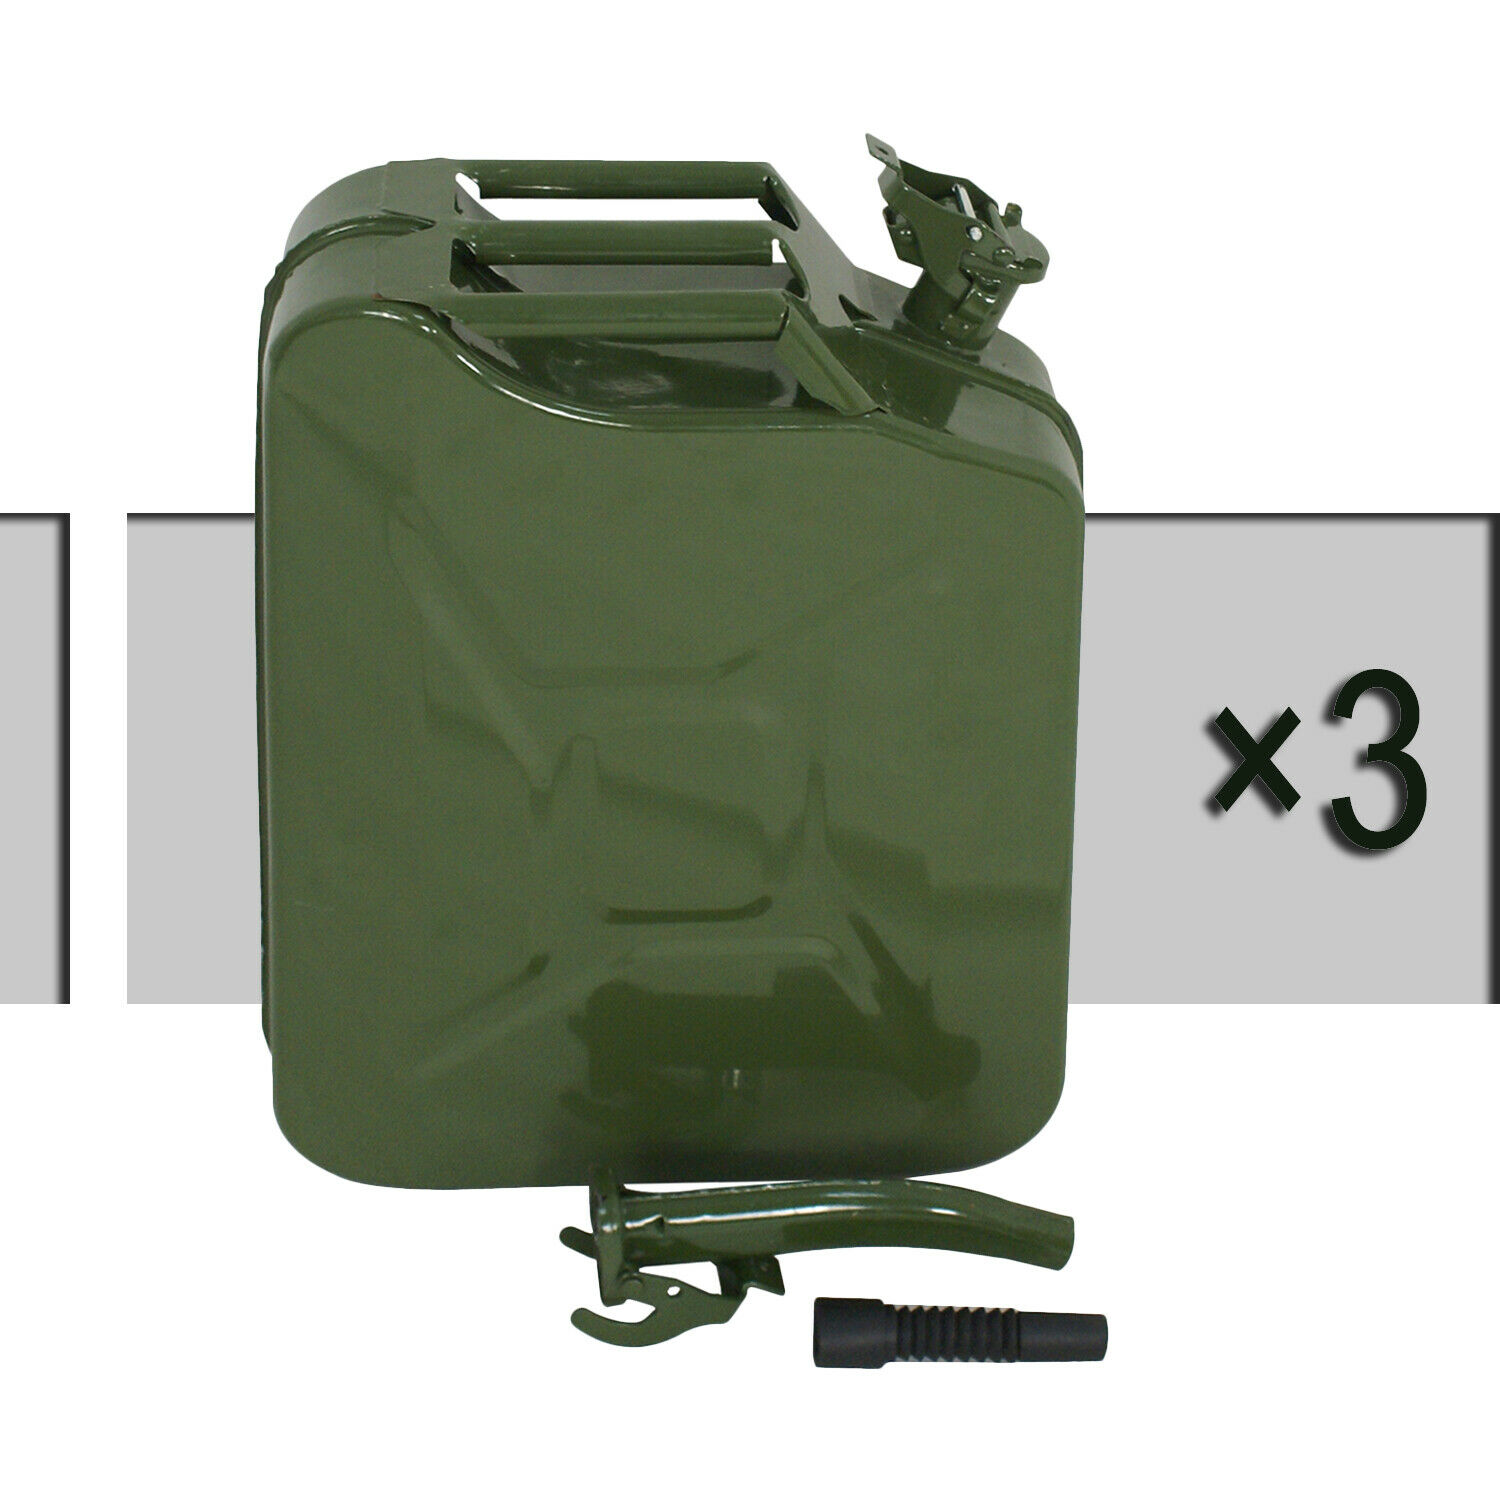 3pcs 20L Green Jerry Can 5 Gallon Gas Fuel Steel Tank Emergency Backup Army Business & Industrial